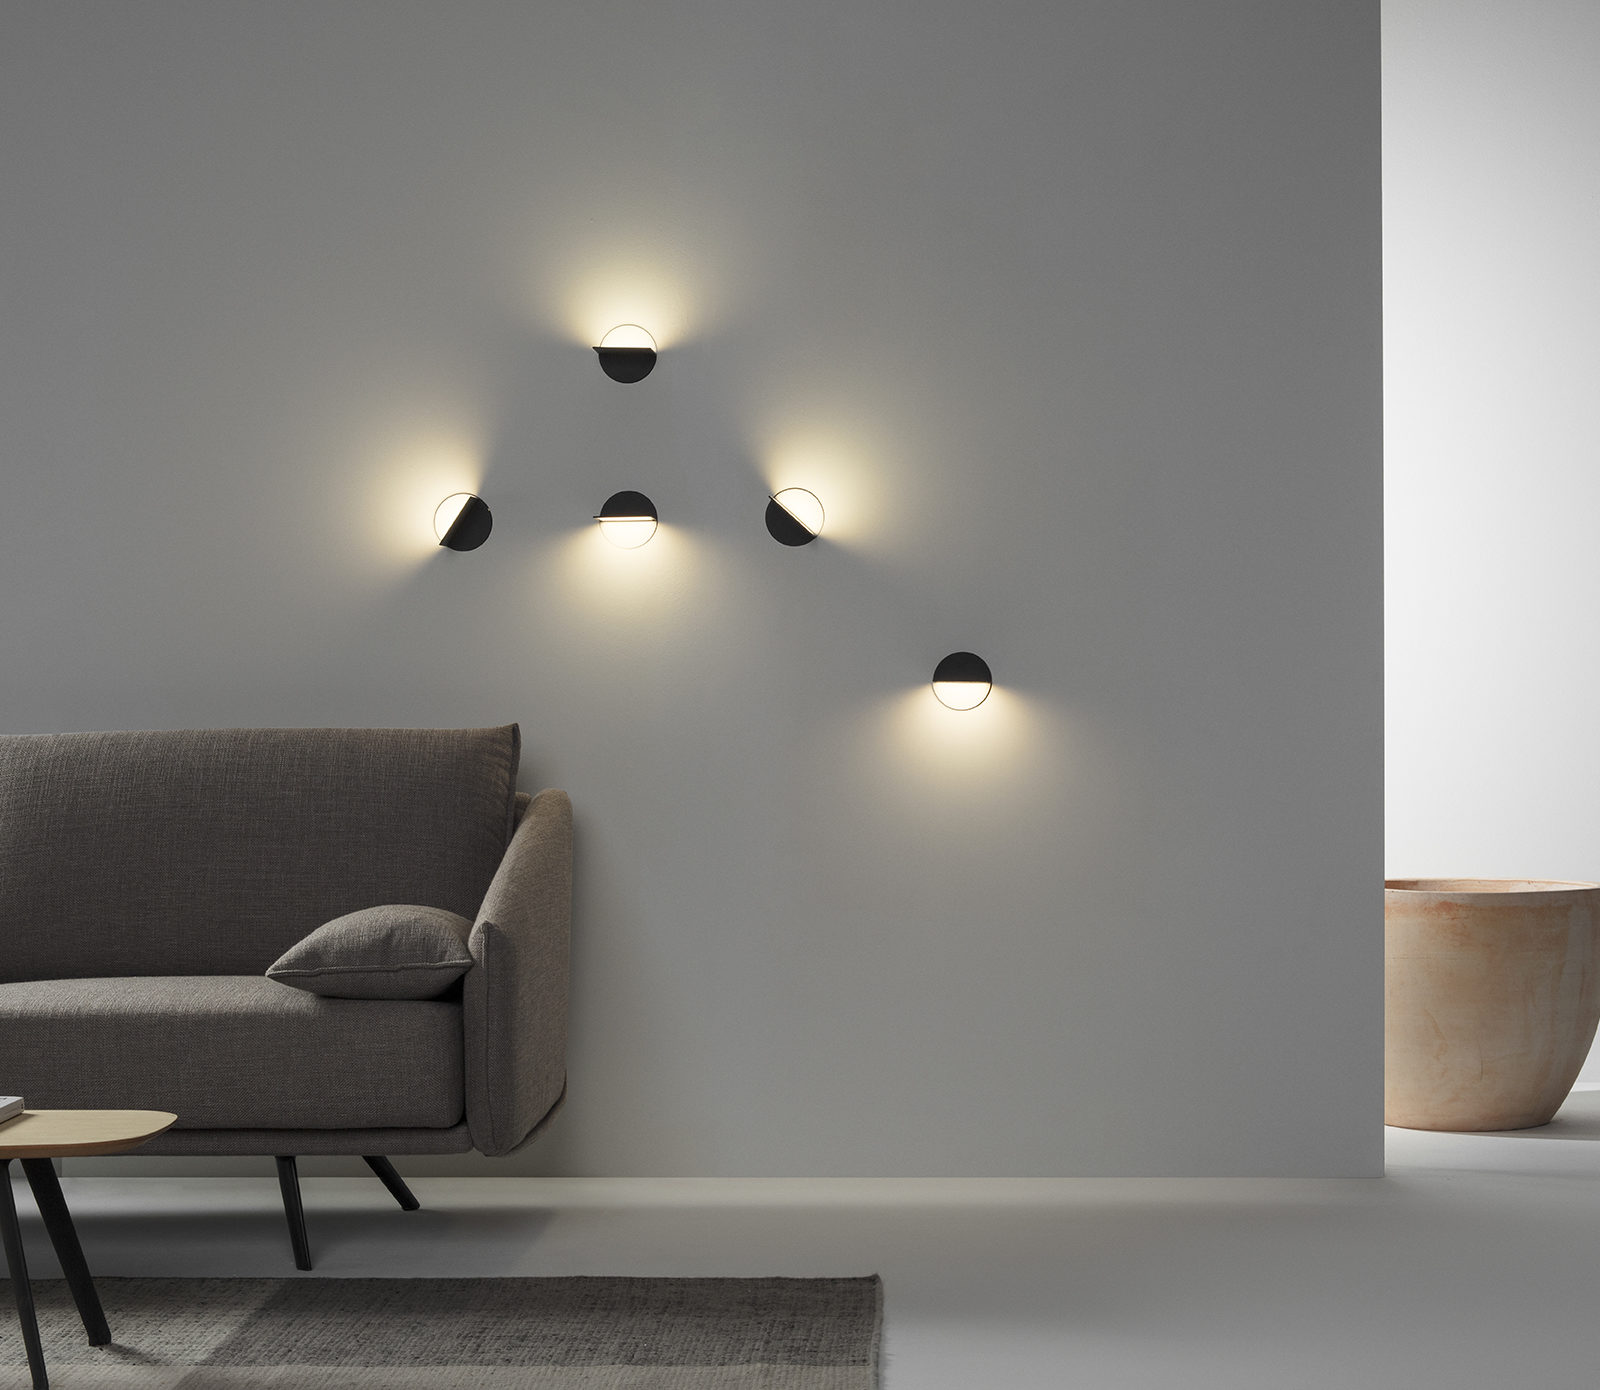 Bringing Fluvia into a contemporary light | FOLCH